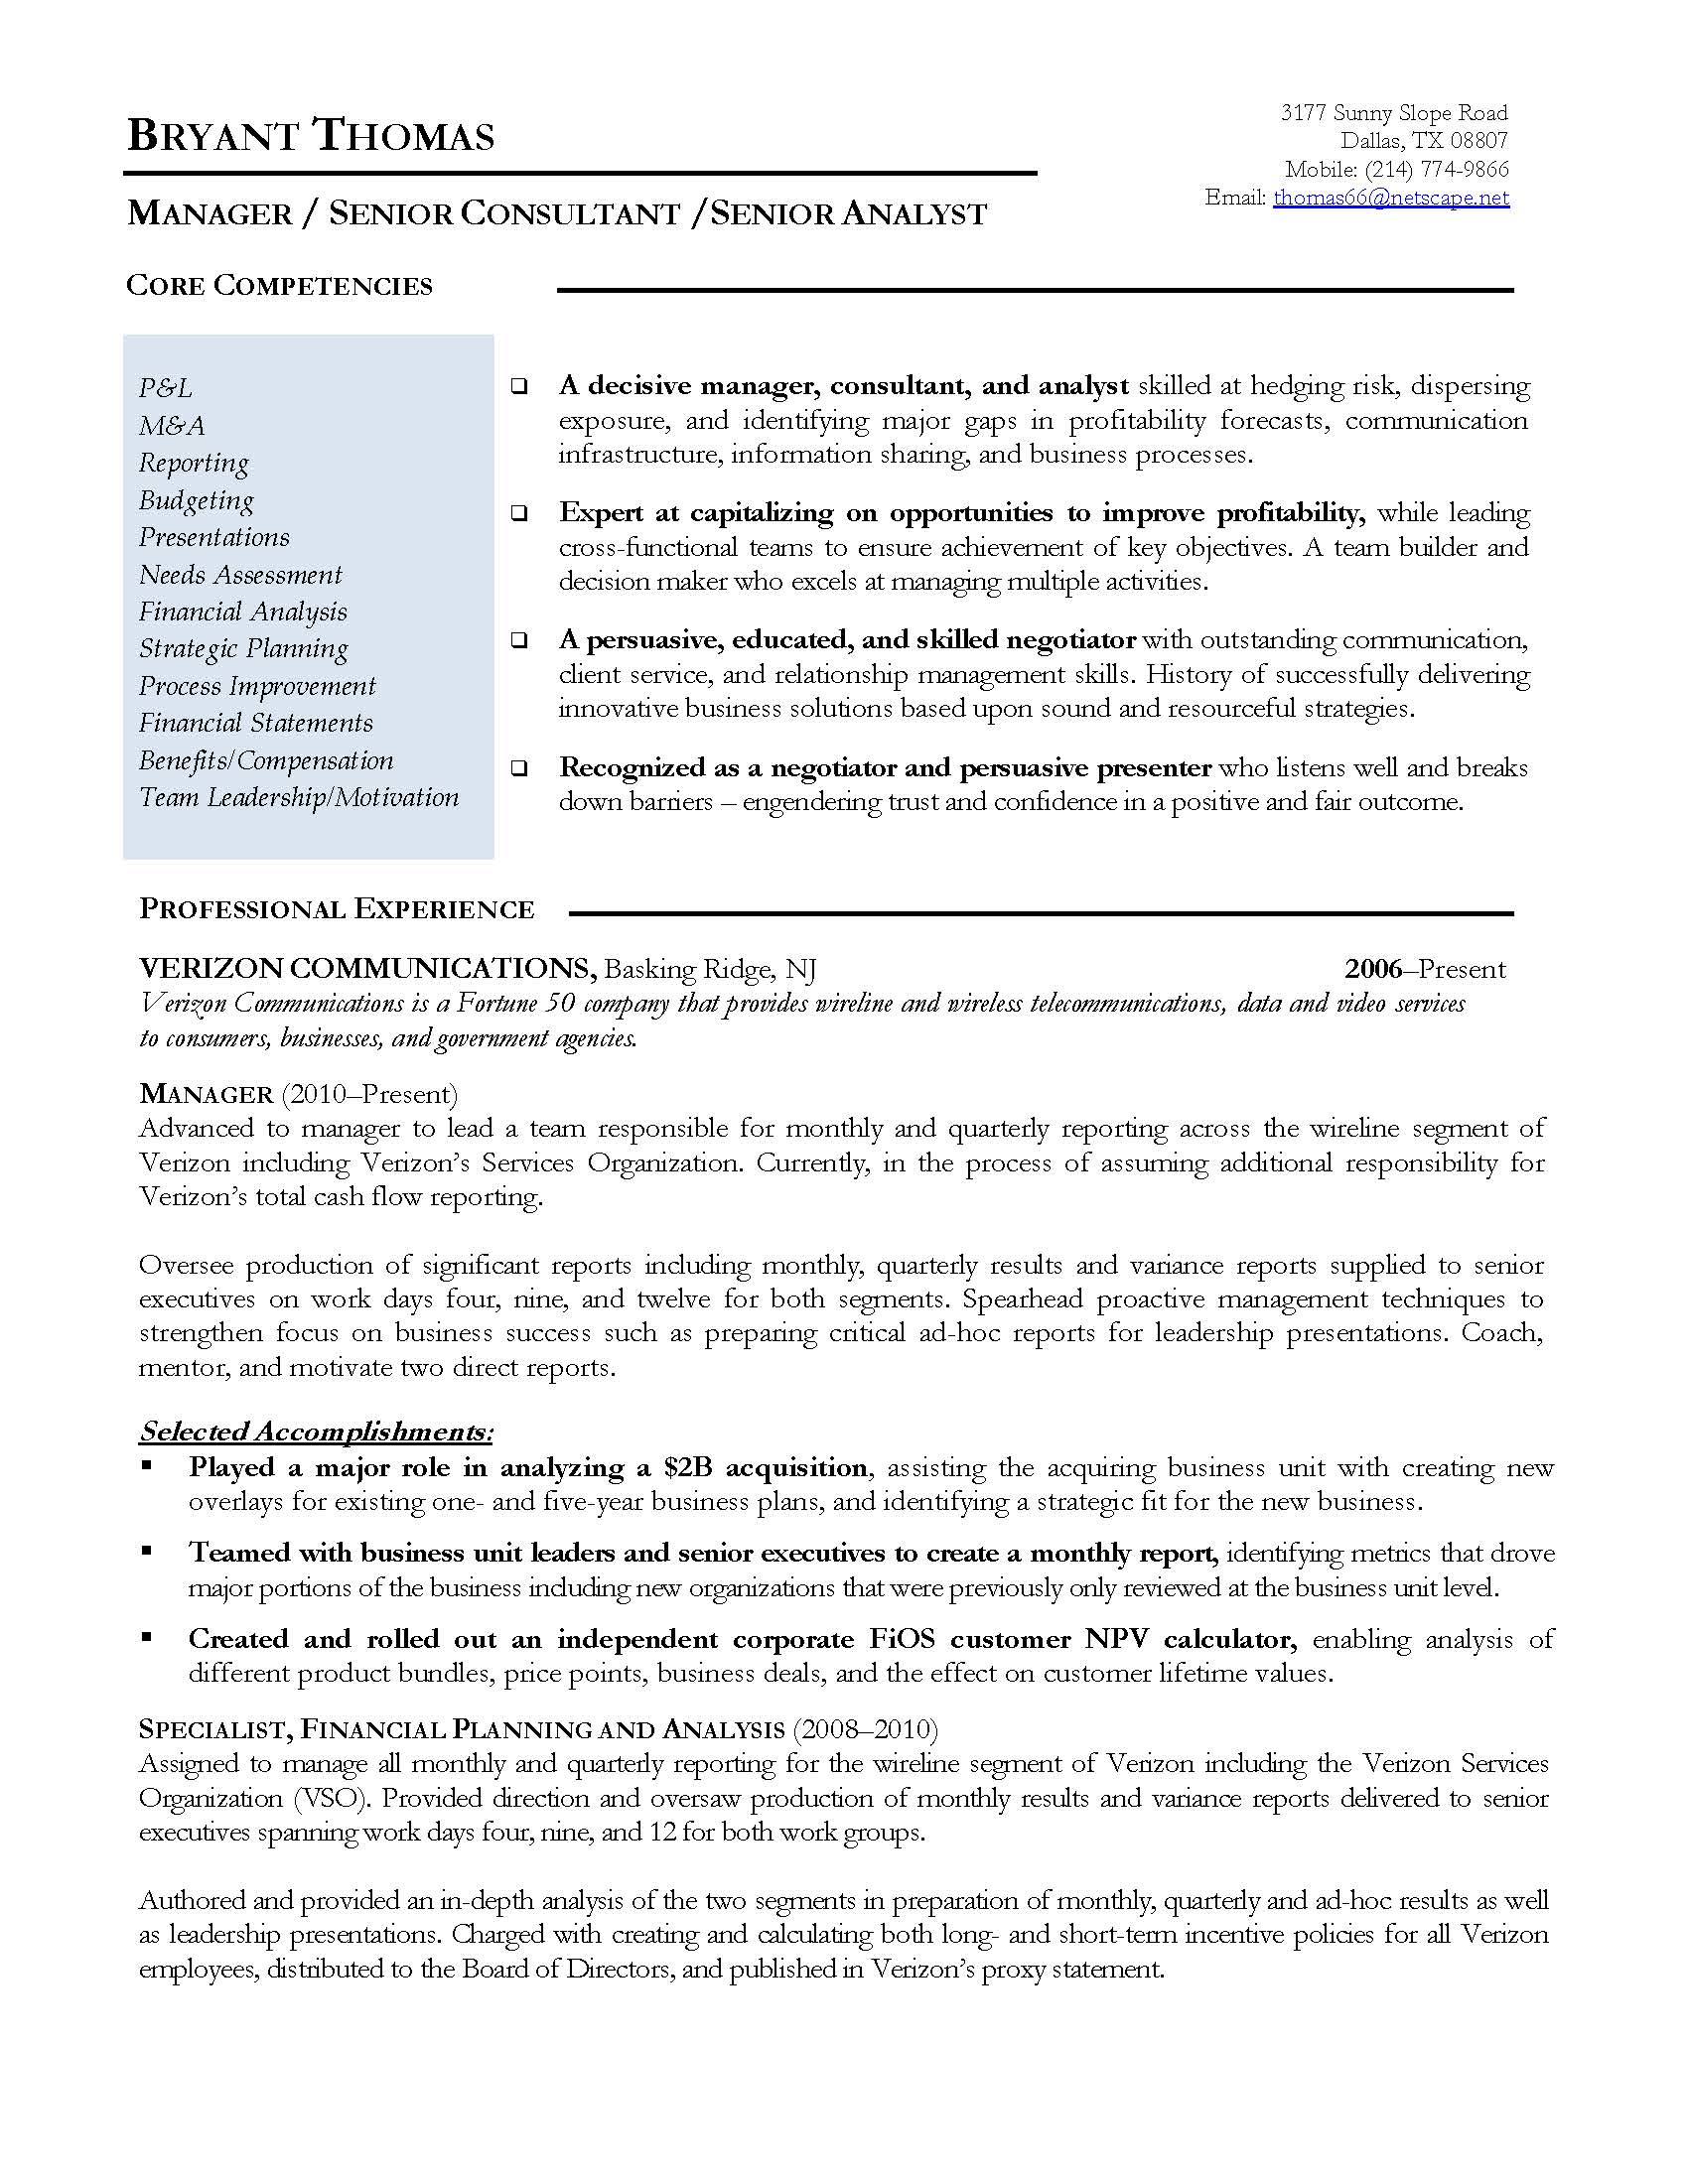 finance manager resume sample, provided by Elite Resume Writing Services